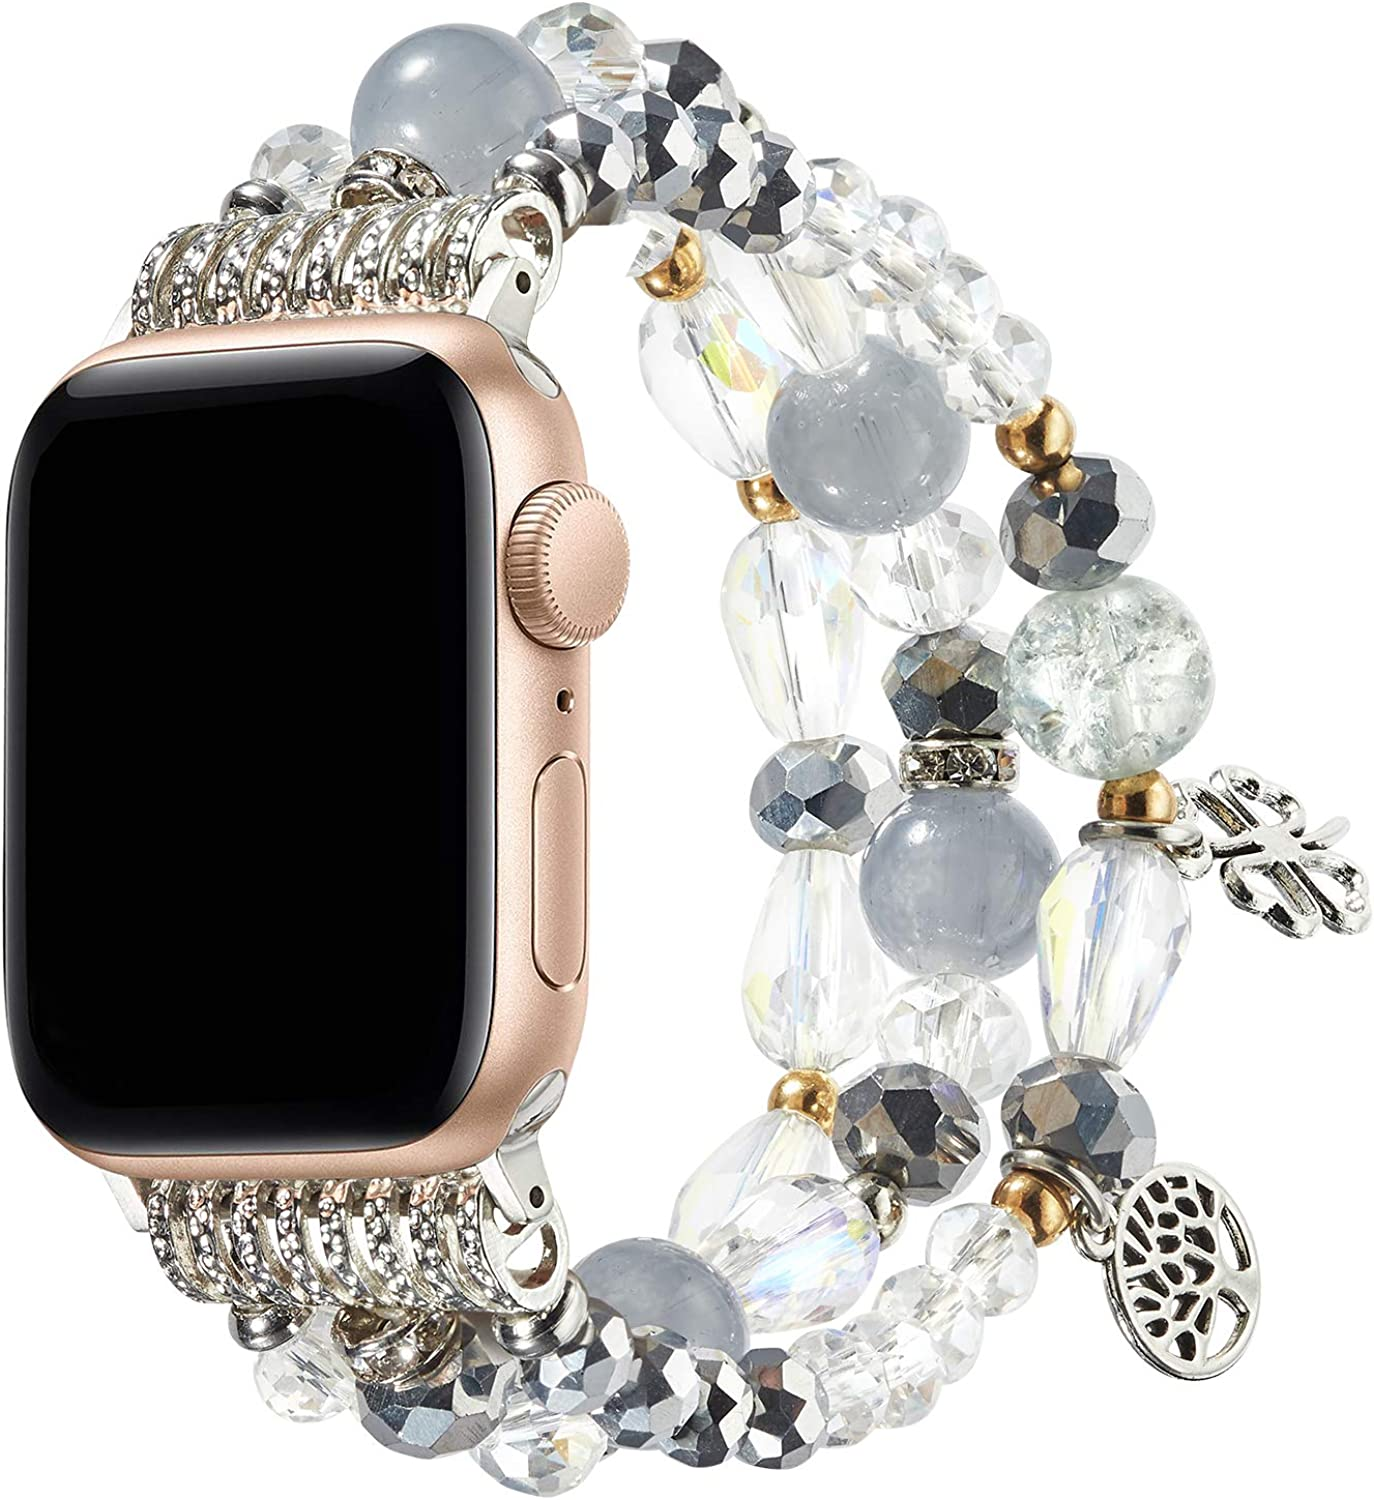 TOMMEIE Bracelet Compatible with Apple Watch Band 38mm 40mm 42mm 44mm fashion charm jewelry beaded elastic band Stainless Steel Adapter Fancy bracelet iWatch Series SE/6/5/4/3/2/1 Women Girl Gift